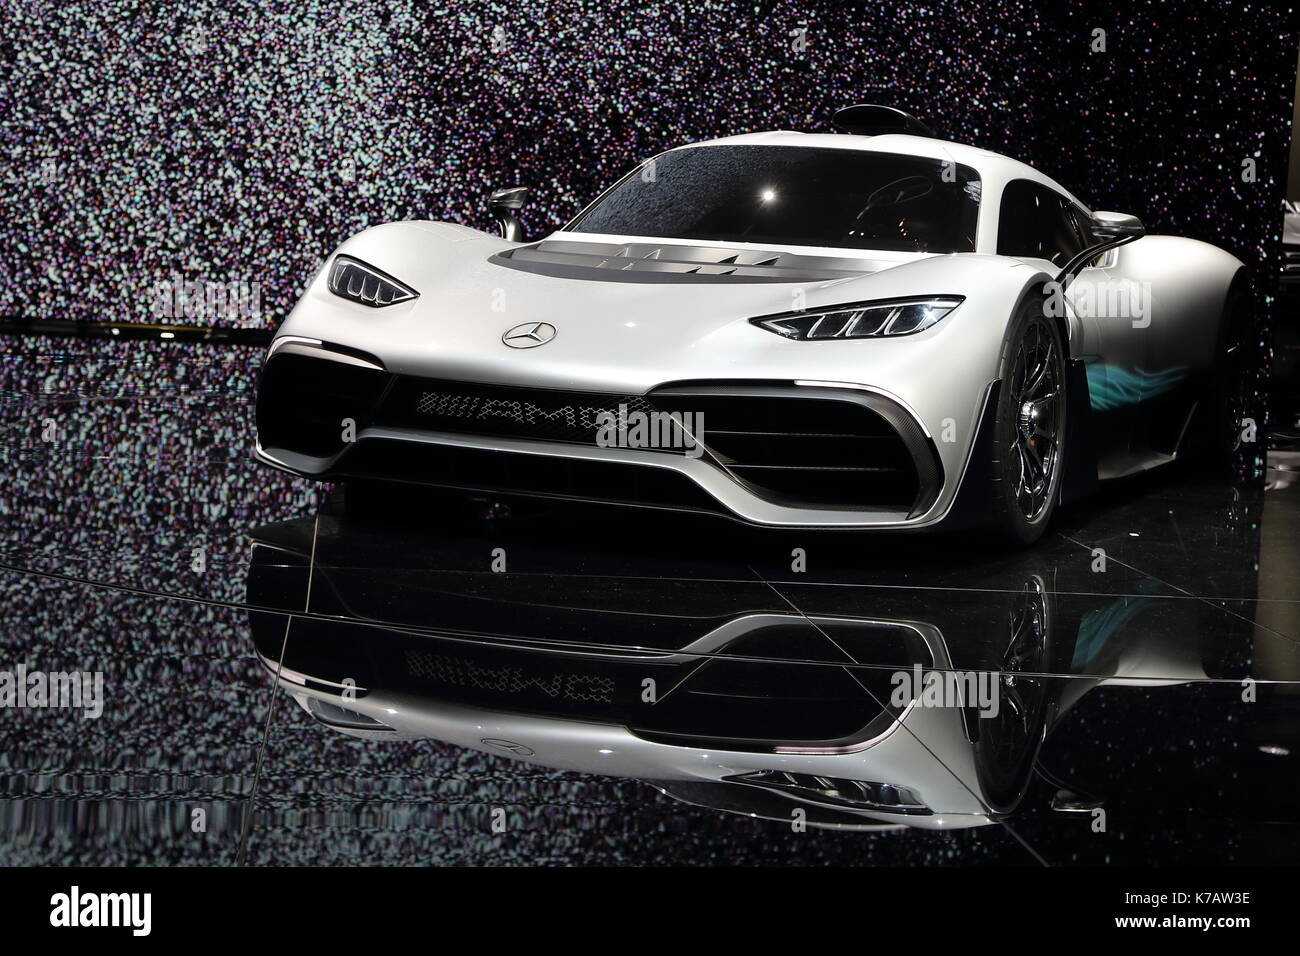 Frankfurt, Germany. 15th Sep, 2017. Car manufacturers from all over the world present their newest models and concept cars at this year's IAA car exhibiton. Electric and hybrid cars were at the centre of attention. Credit: Uwe Deffner/Alamy Live News - Stock Image